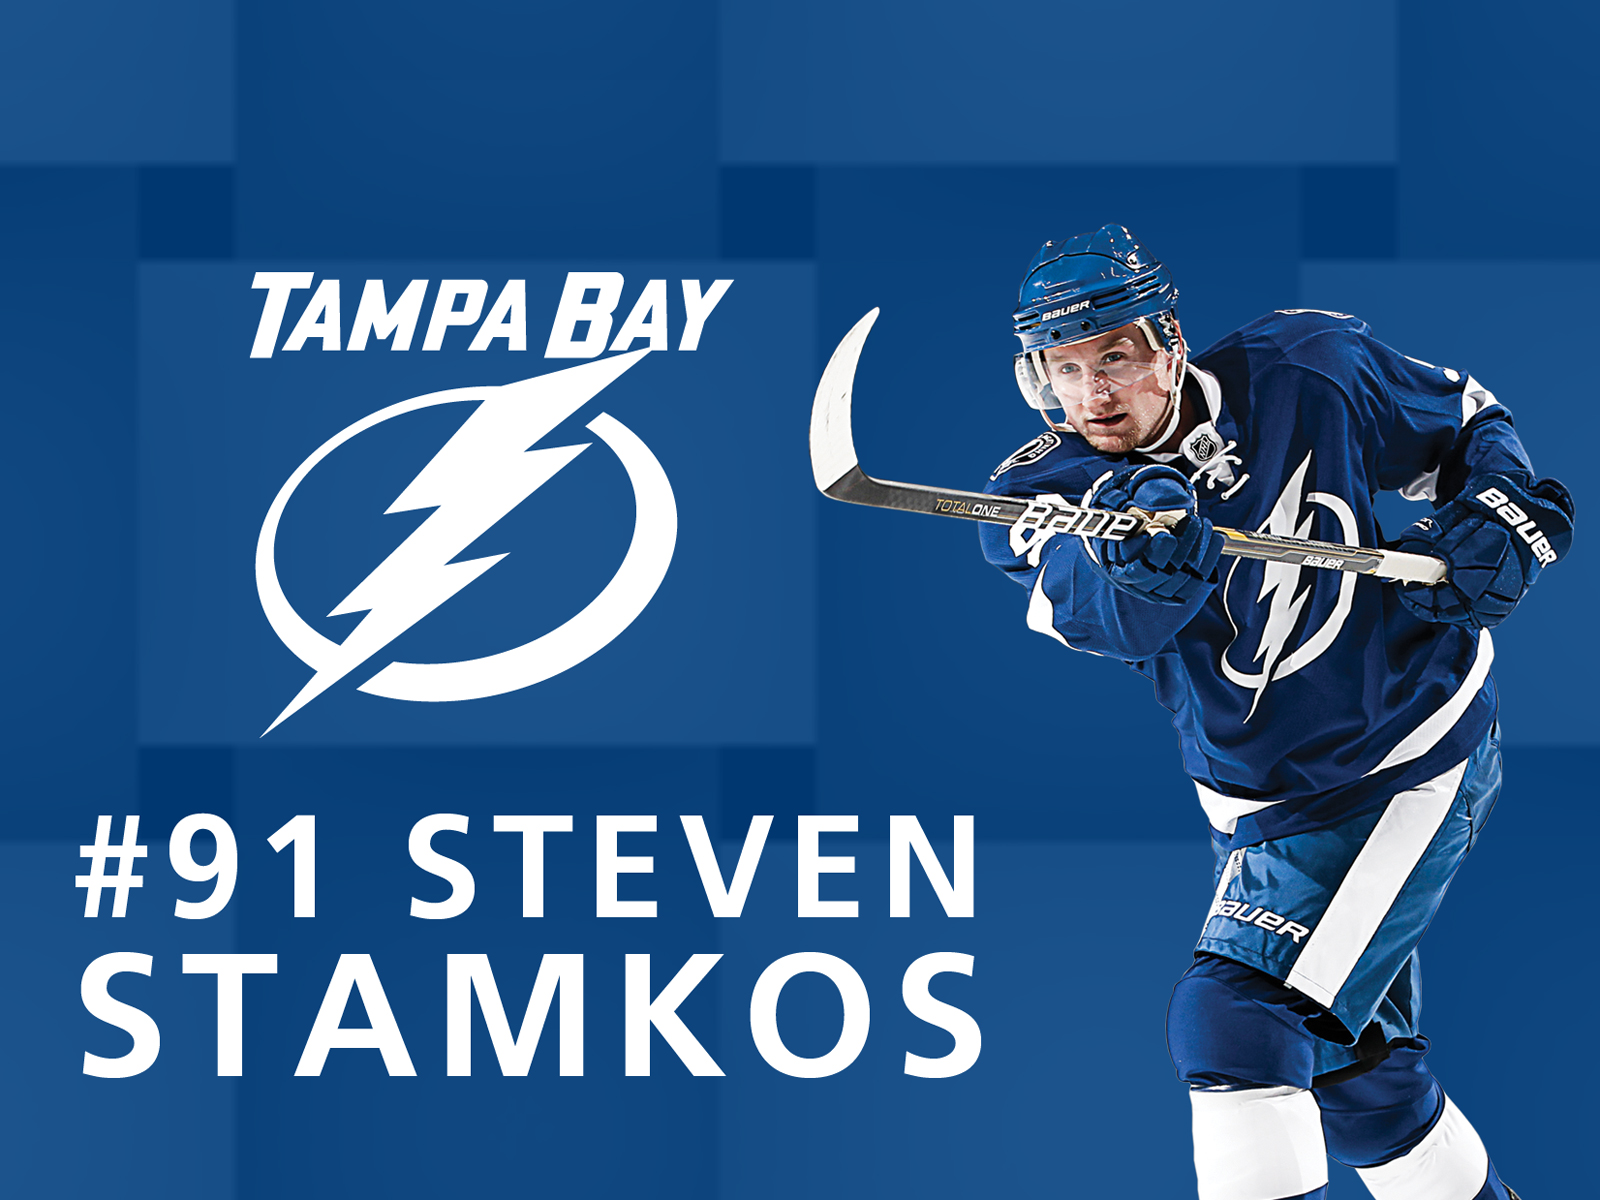 Steven Stamkos Tampa Bay Lightning Wallpaper 172614 HD Wallpaper Res 1600x1200